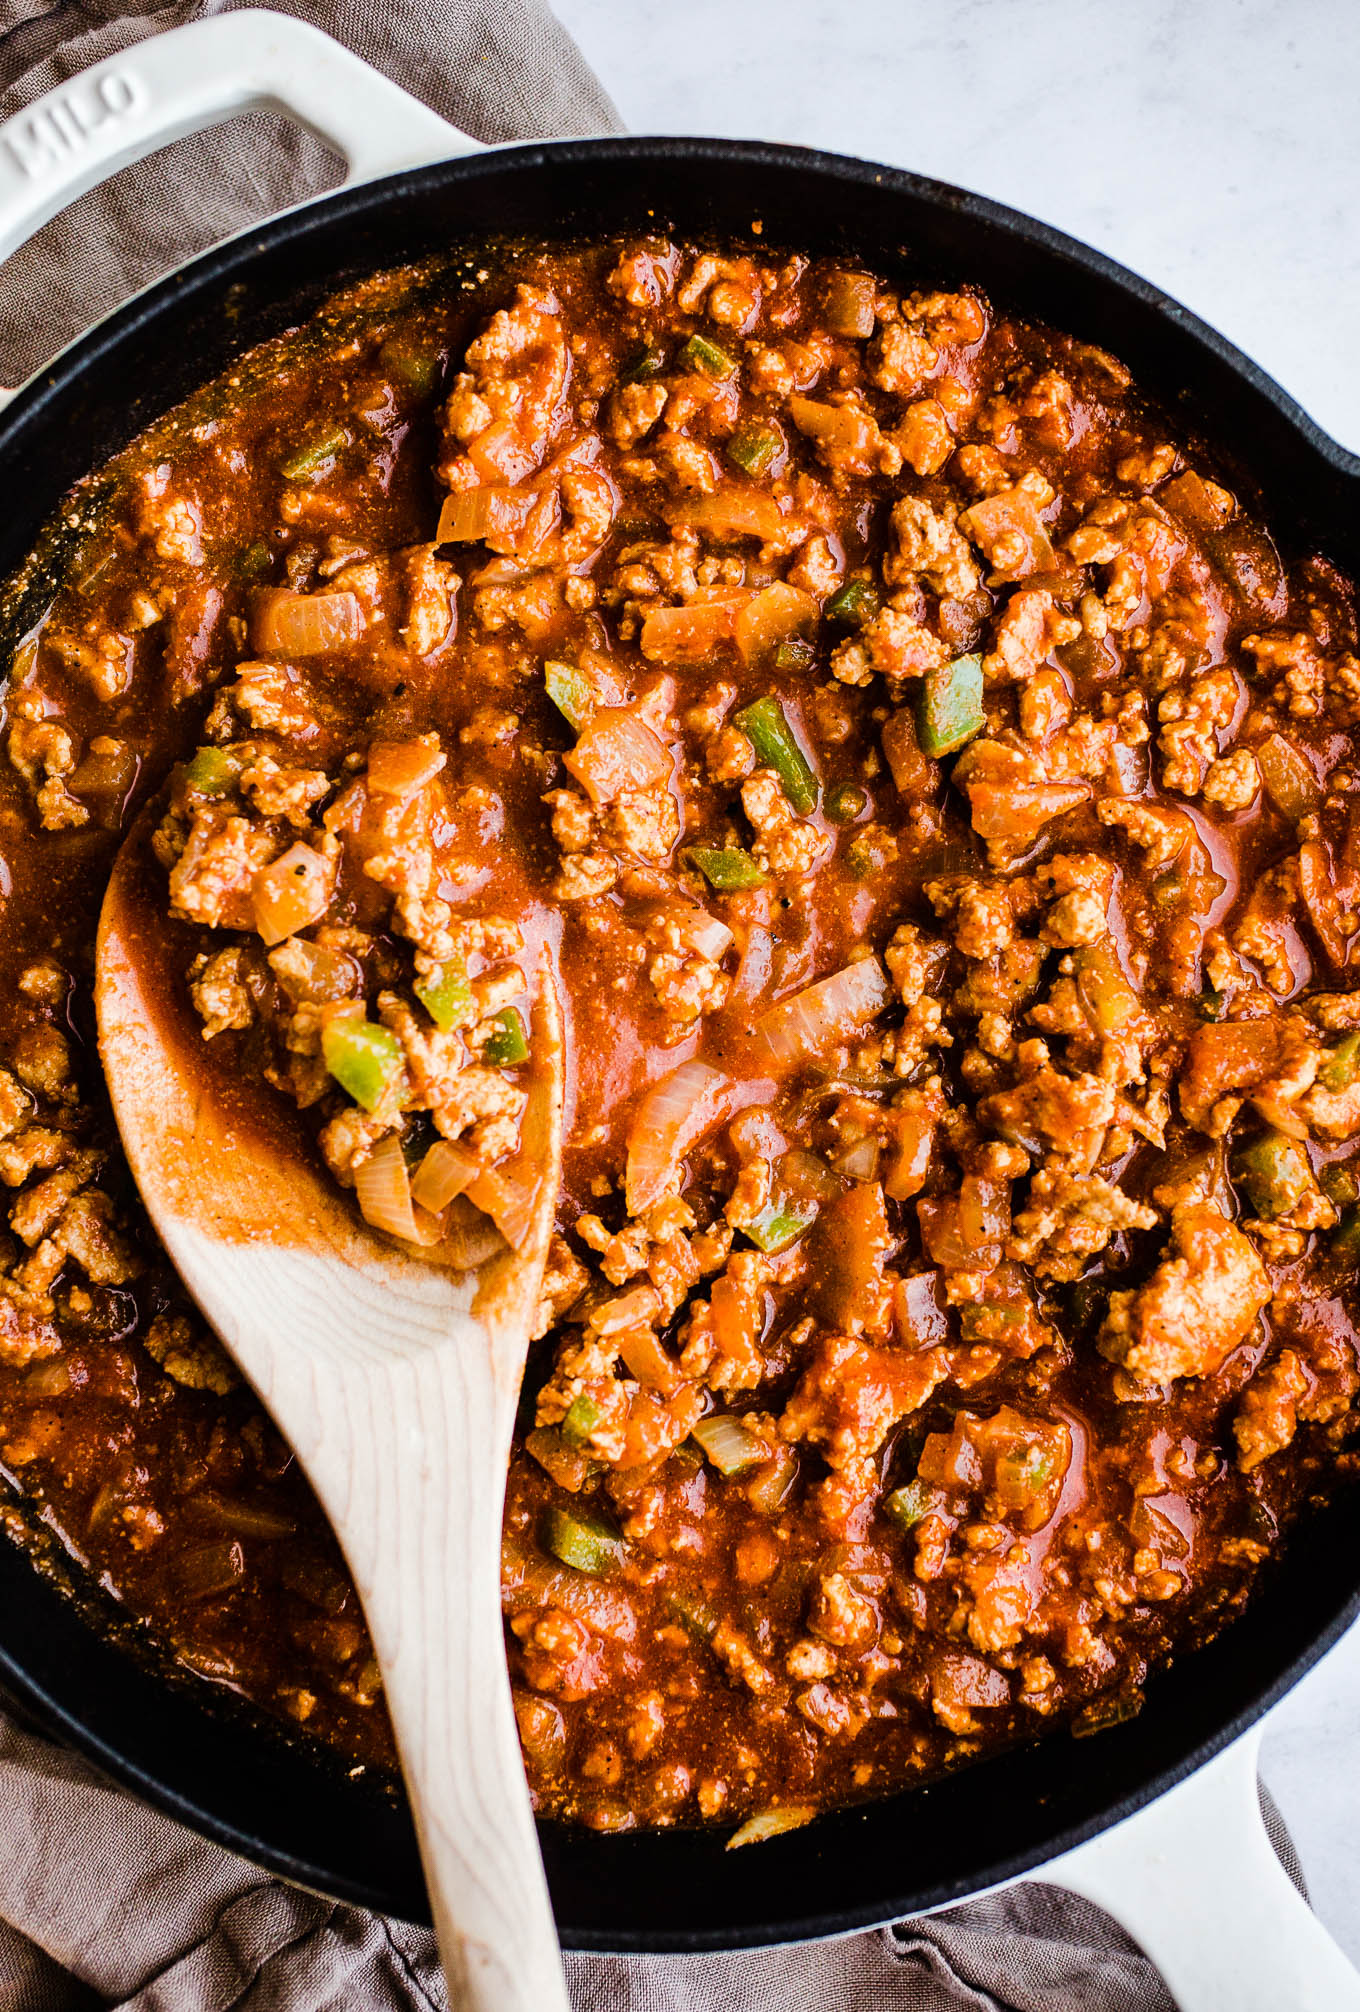 Sloppy joe mixture in a skillet